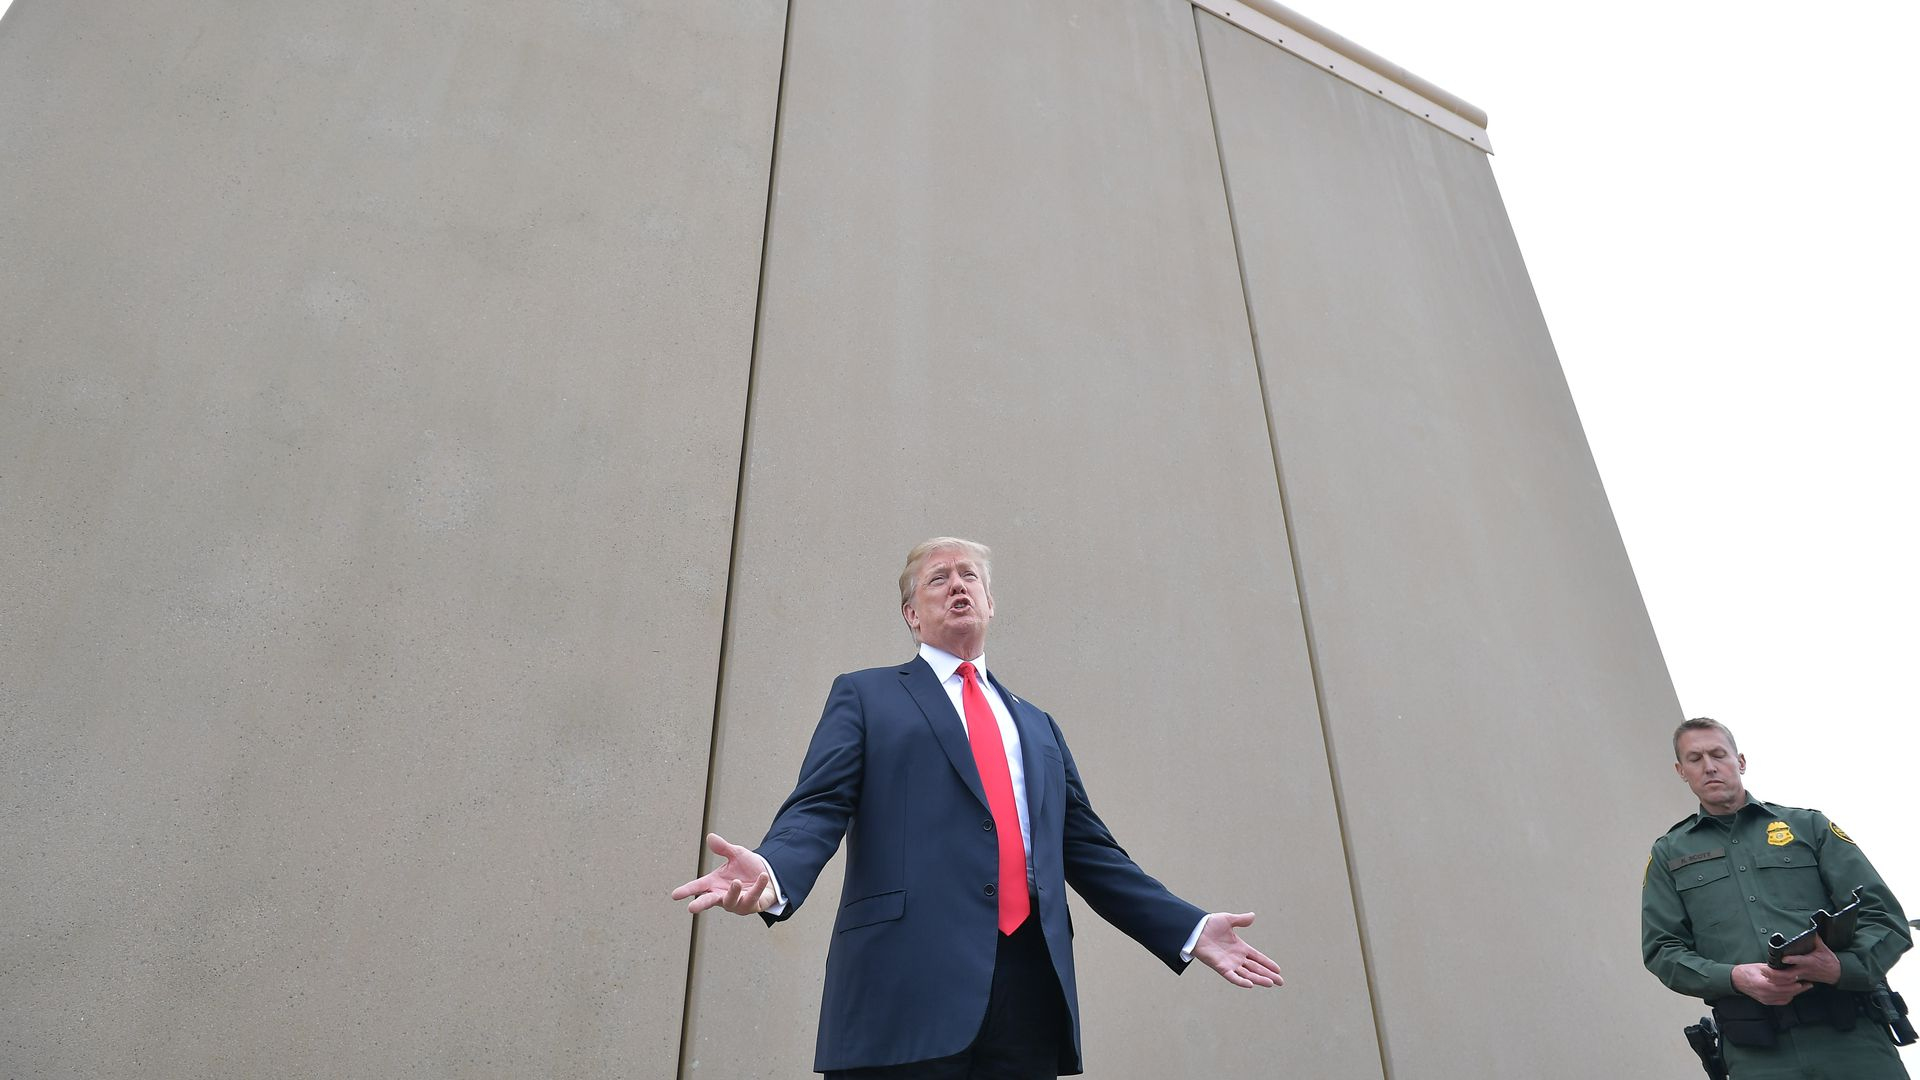 In this image, Trump stands in front of a border wall prototype.